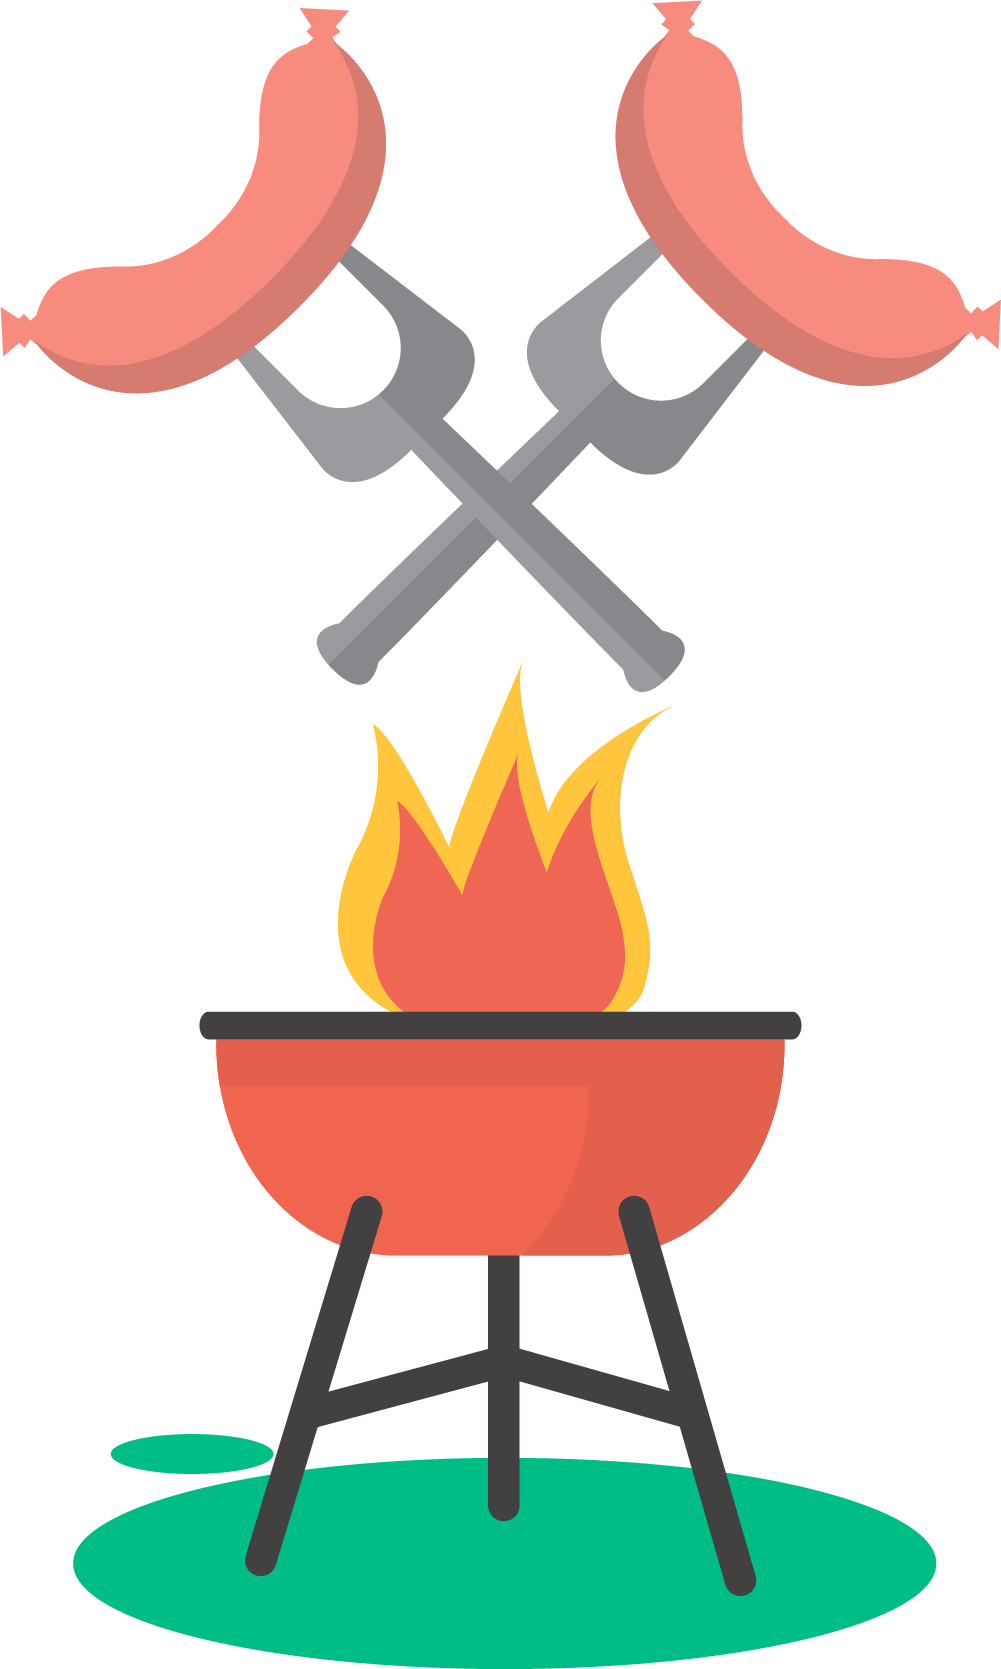 jpg freeuse library Barbecue steak picnic grilling. Grilled clipart grill fish